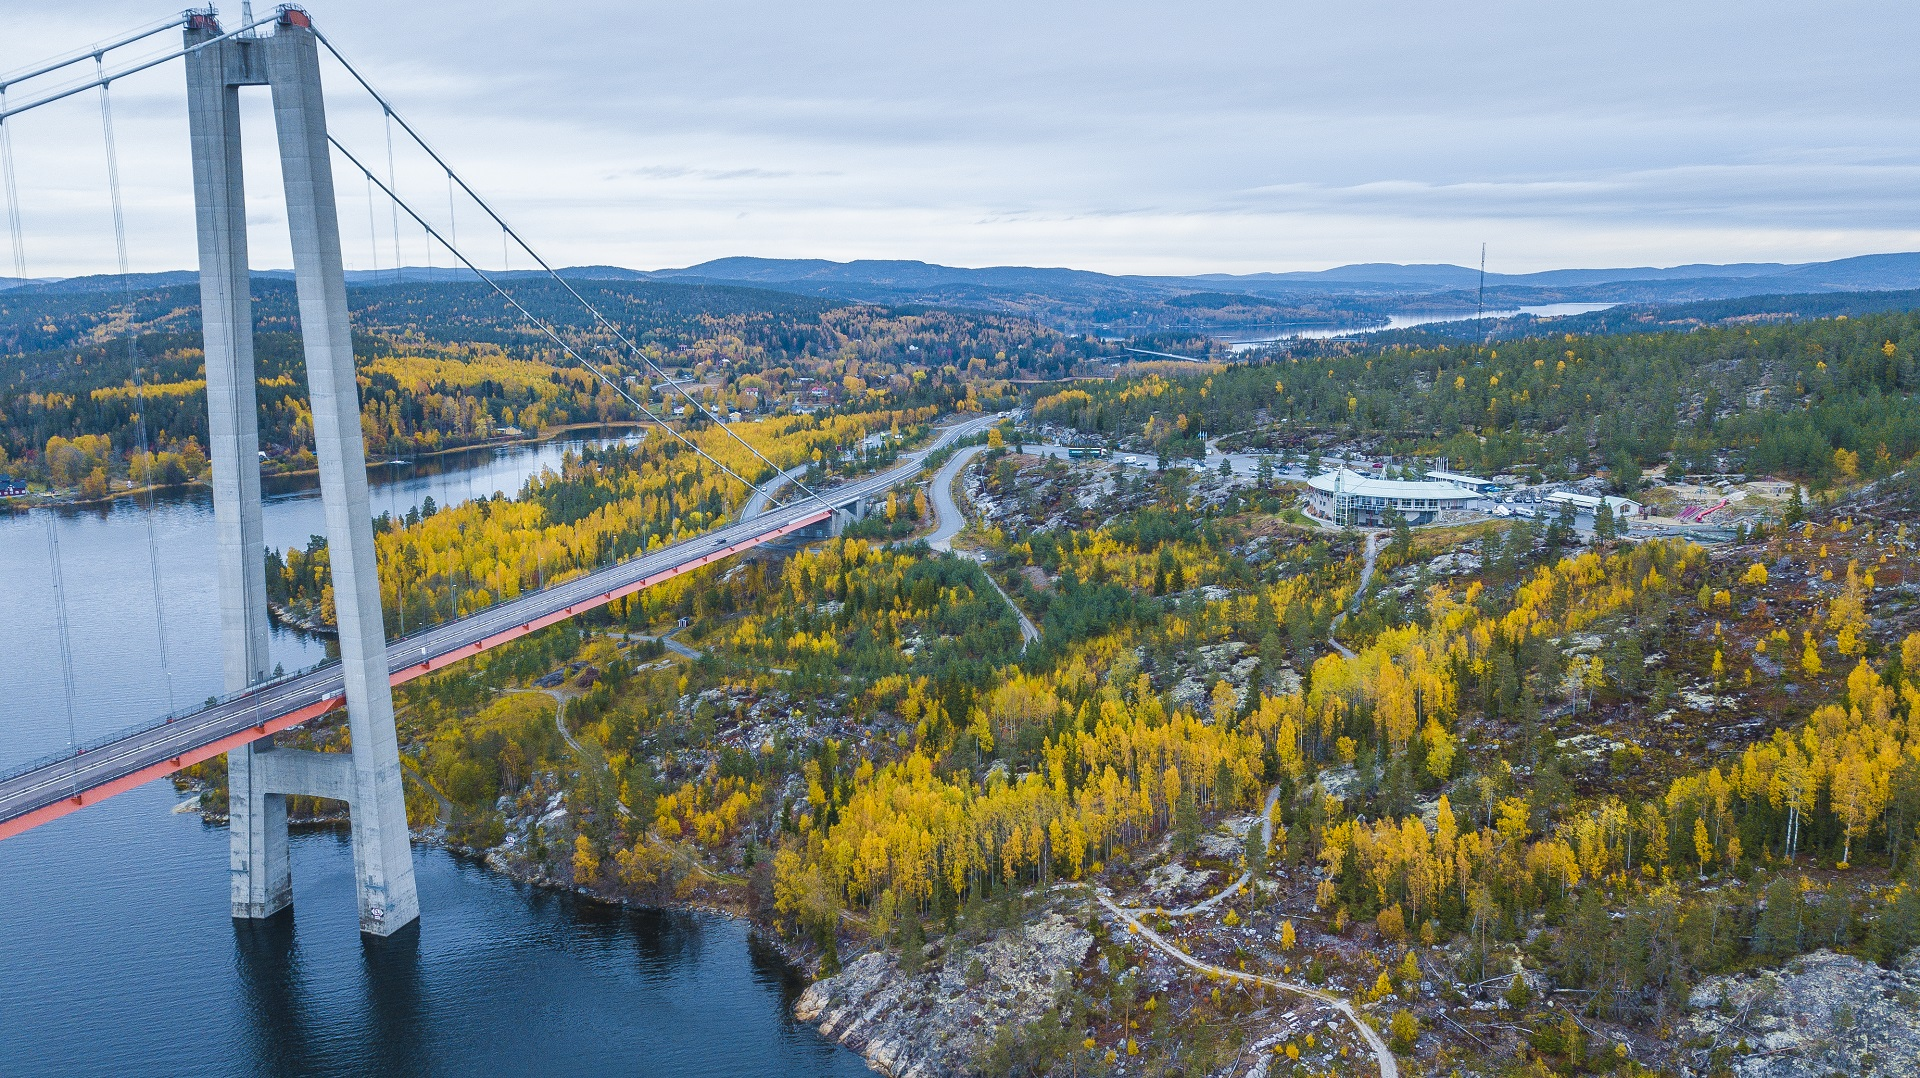 The High Coast bridge and Hornöberget during autumn colours.